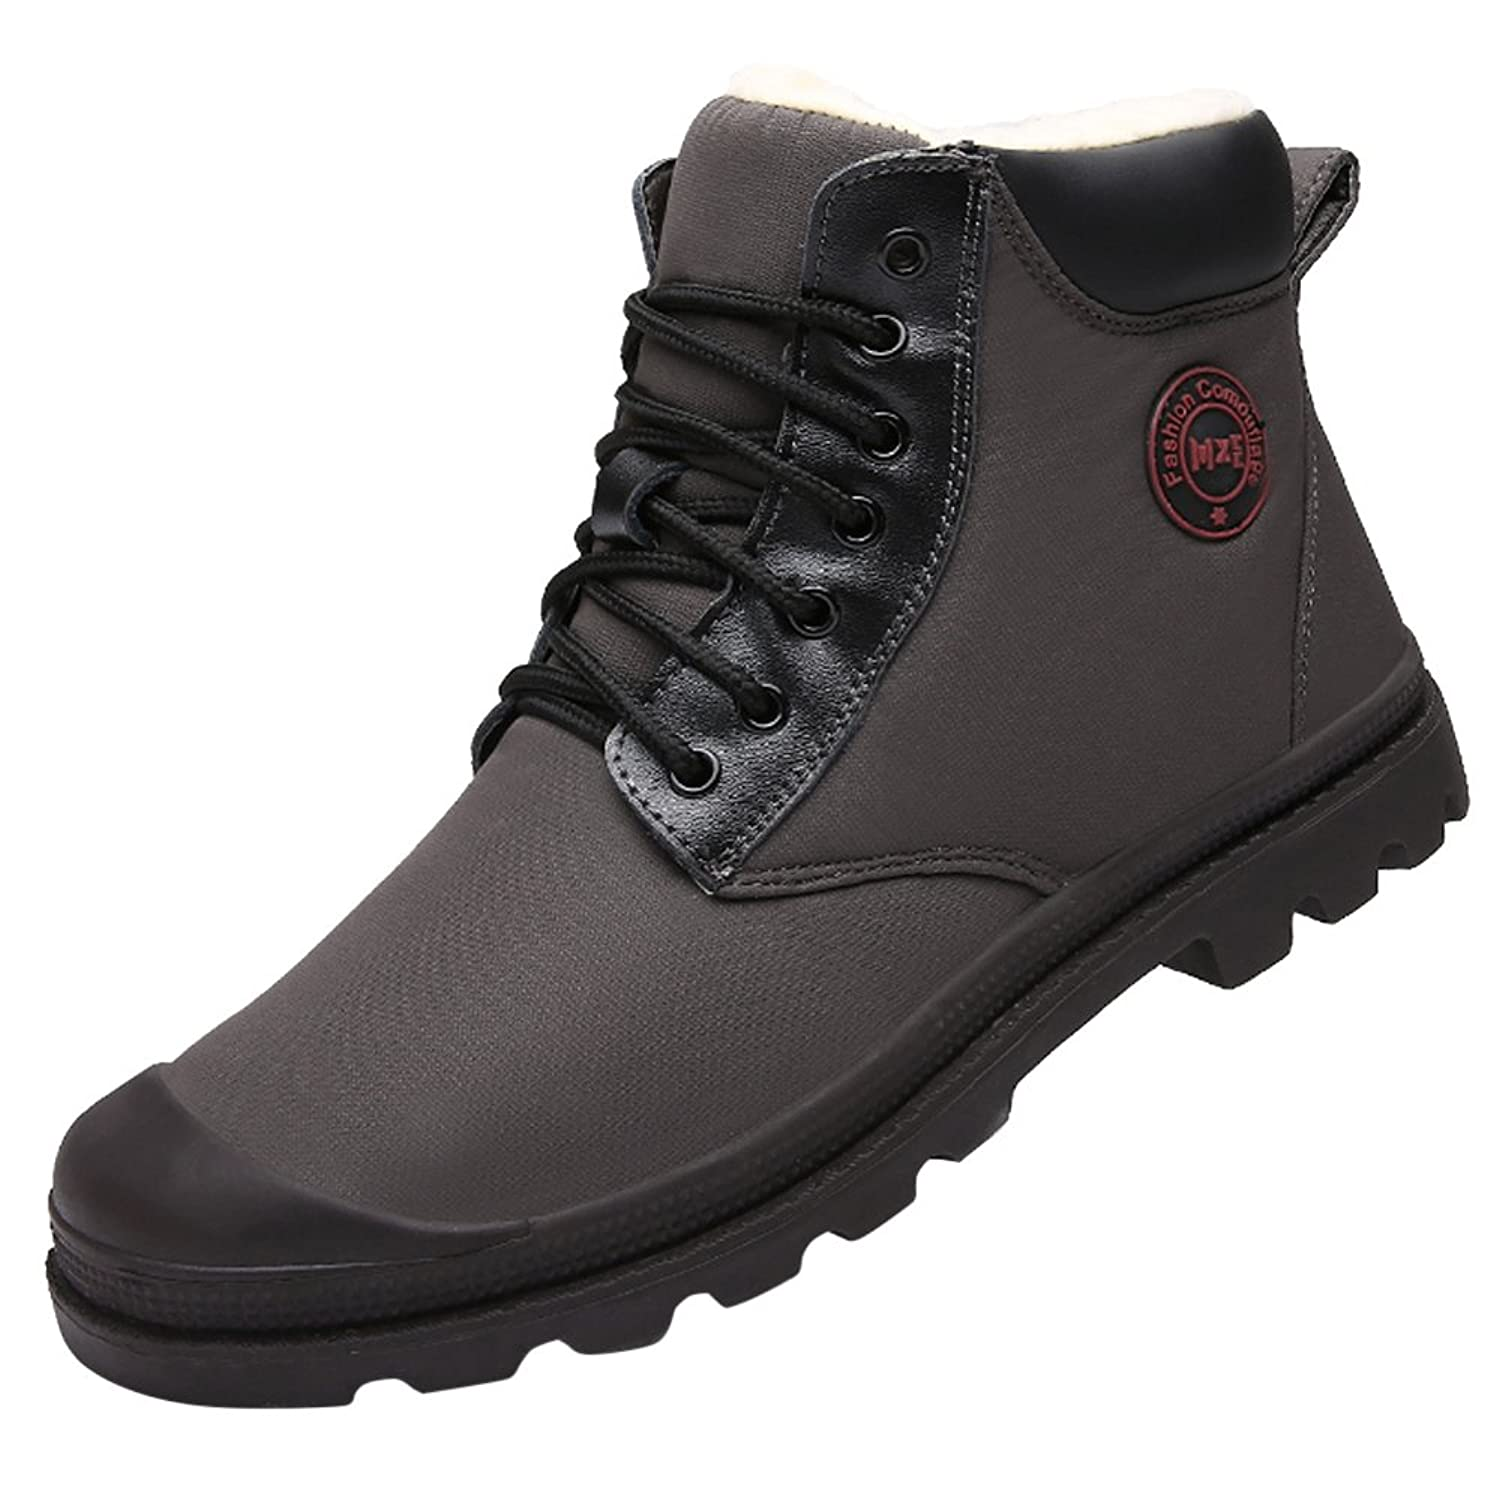 Men's Warm Snow Boots Lace Up Ankle Waterproof Sneakers High Top Shoes:  Amazon.ca: Shoes & Handbags